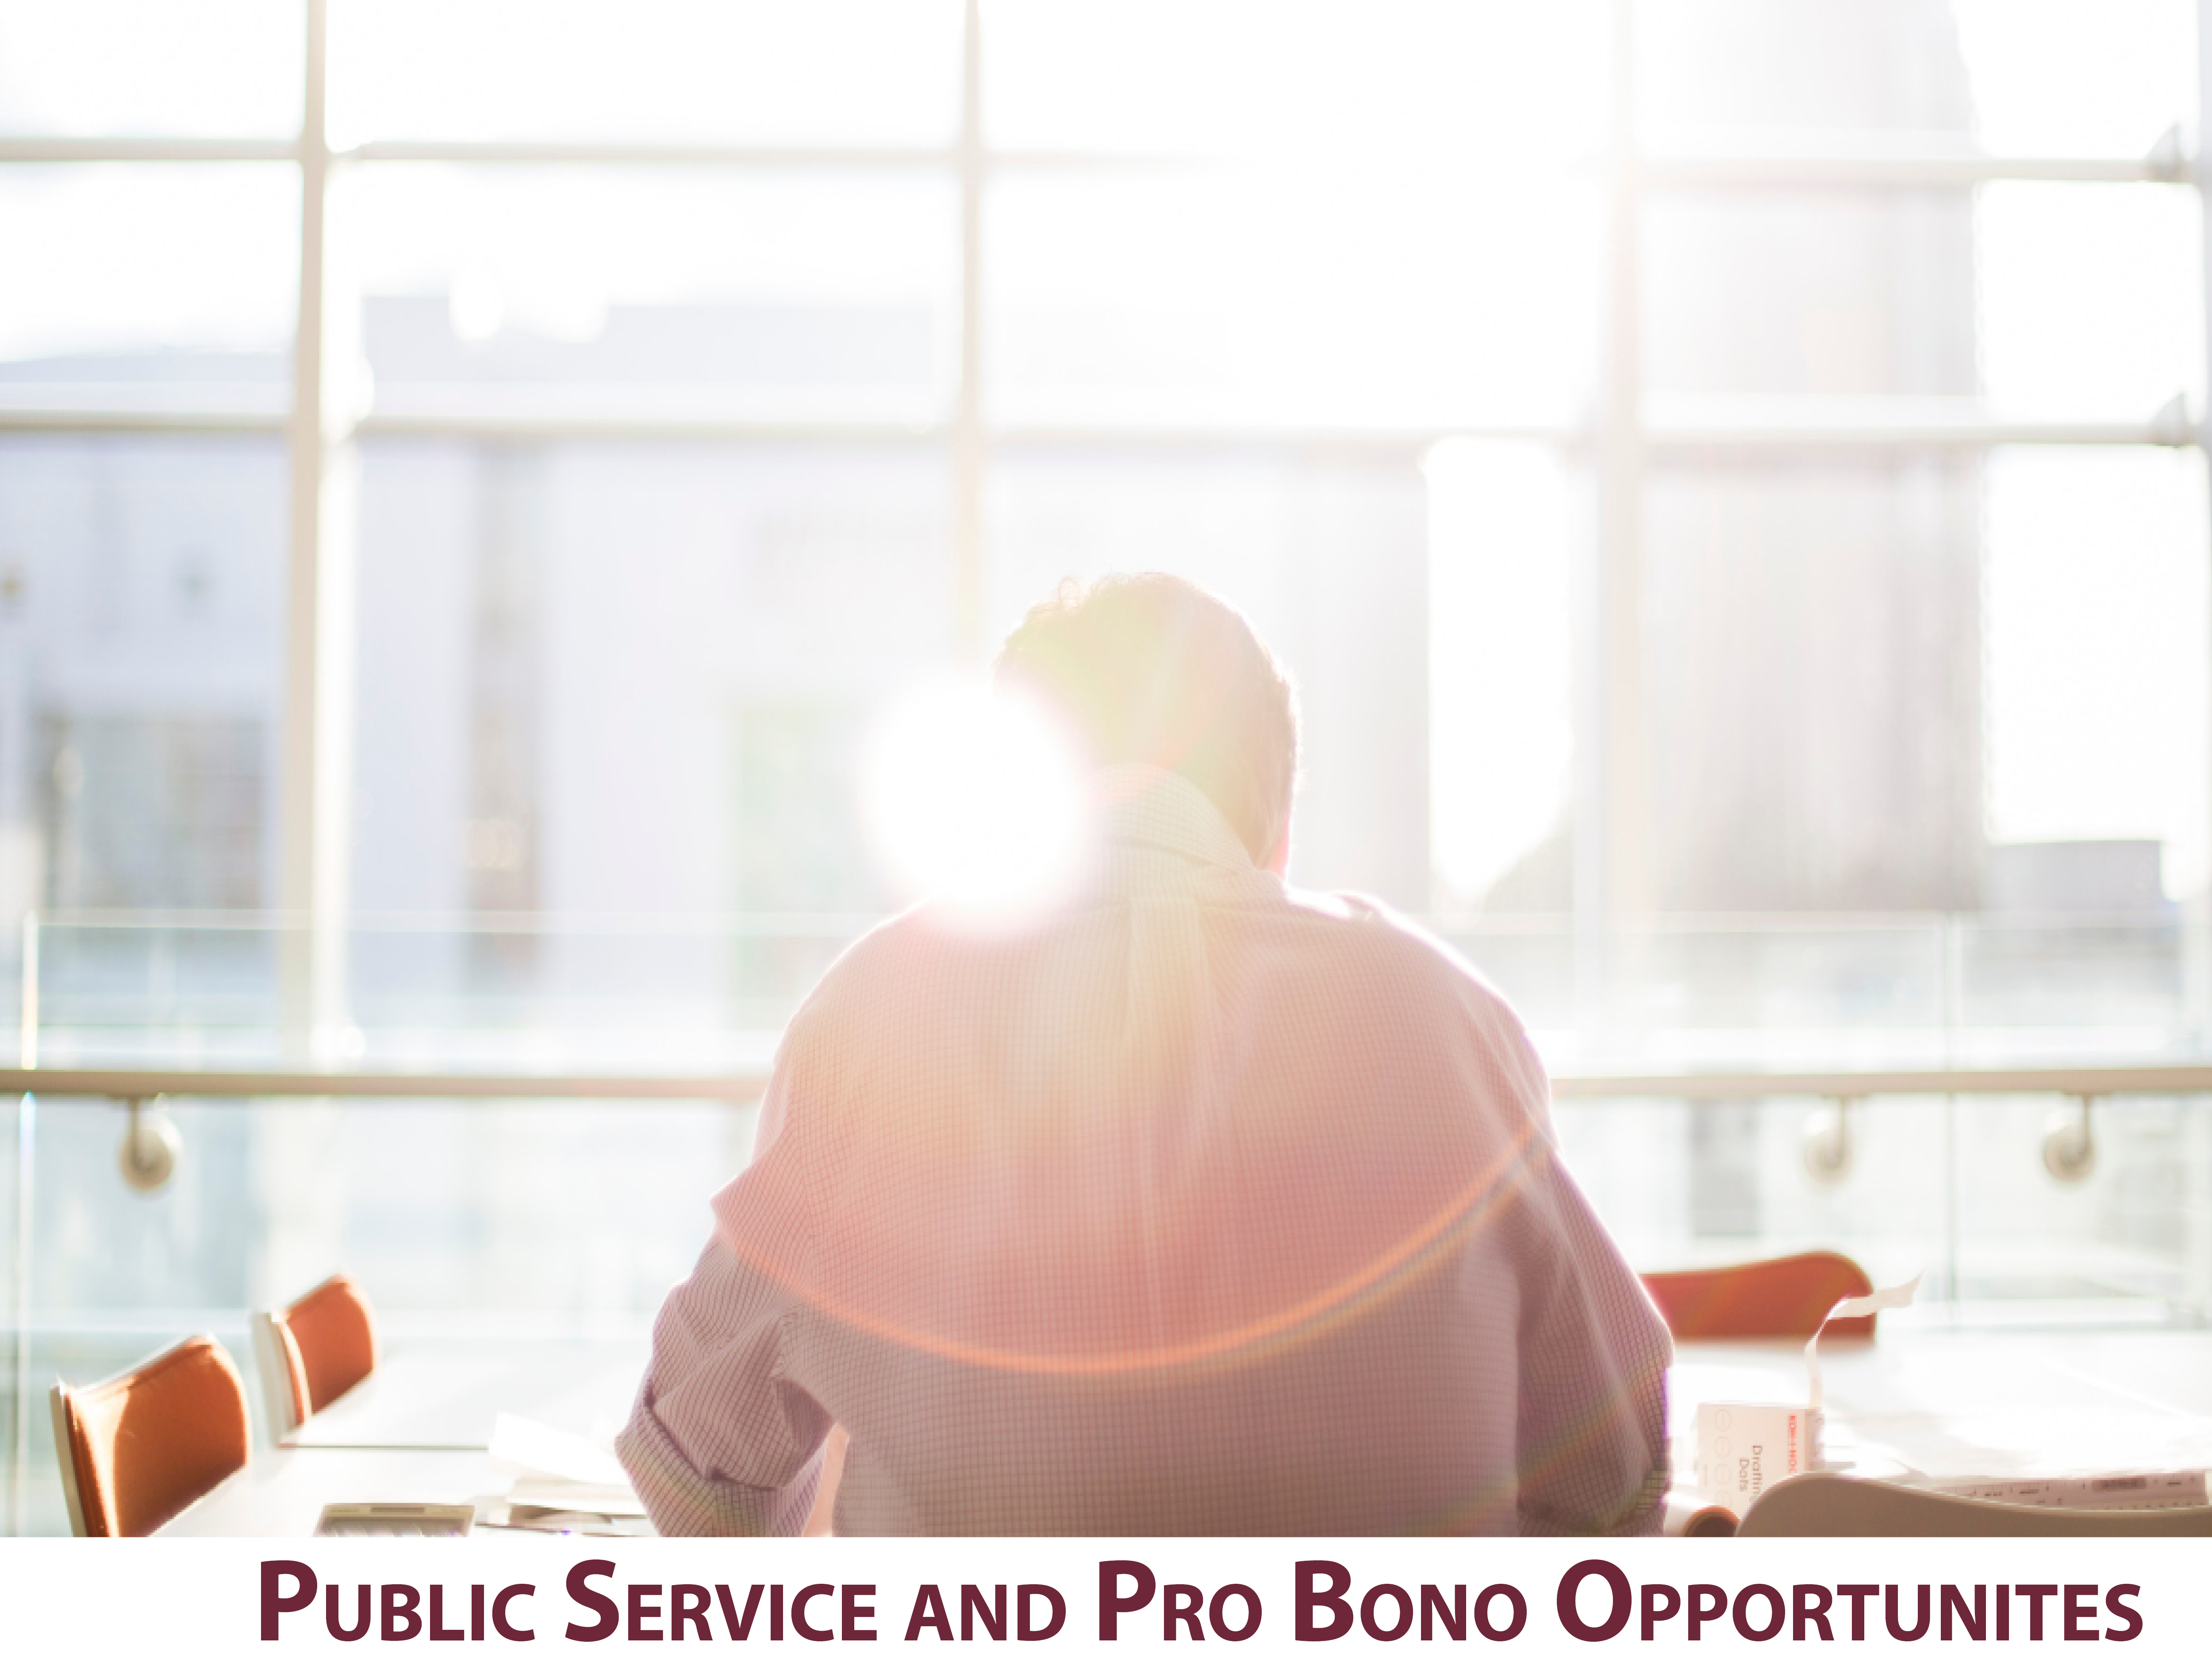 Public Service and Pro Bono Opportunities